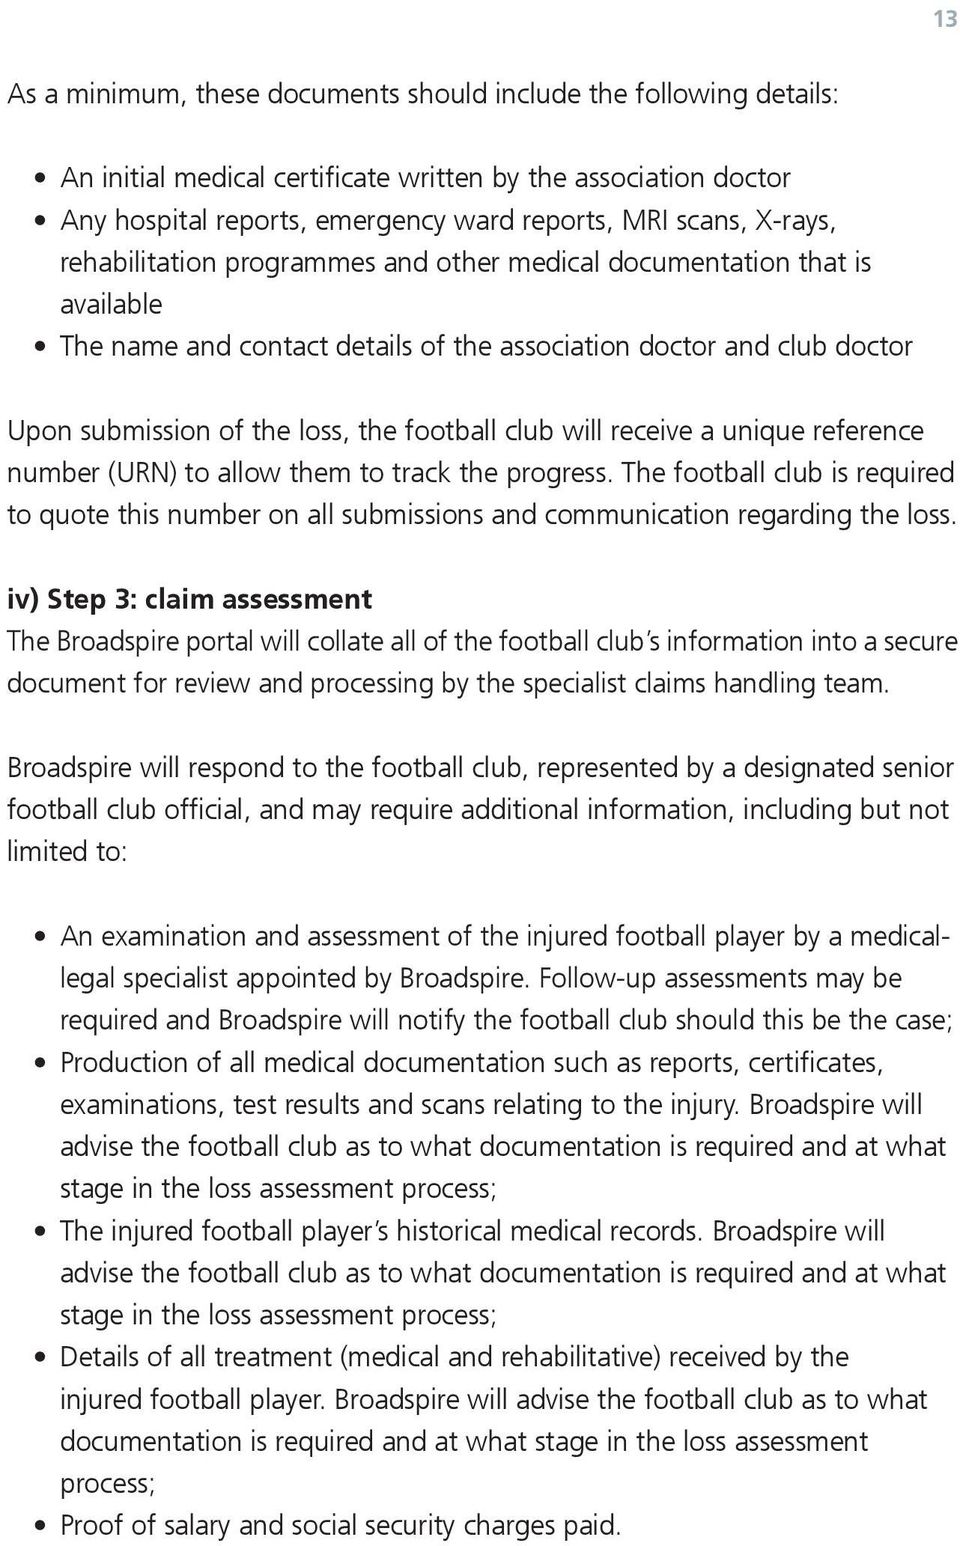 (URN) to allow m to track progress. The football club is required to quote this number on all submissions communication regarding loss.